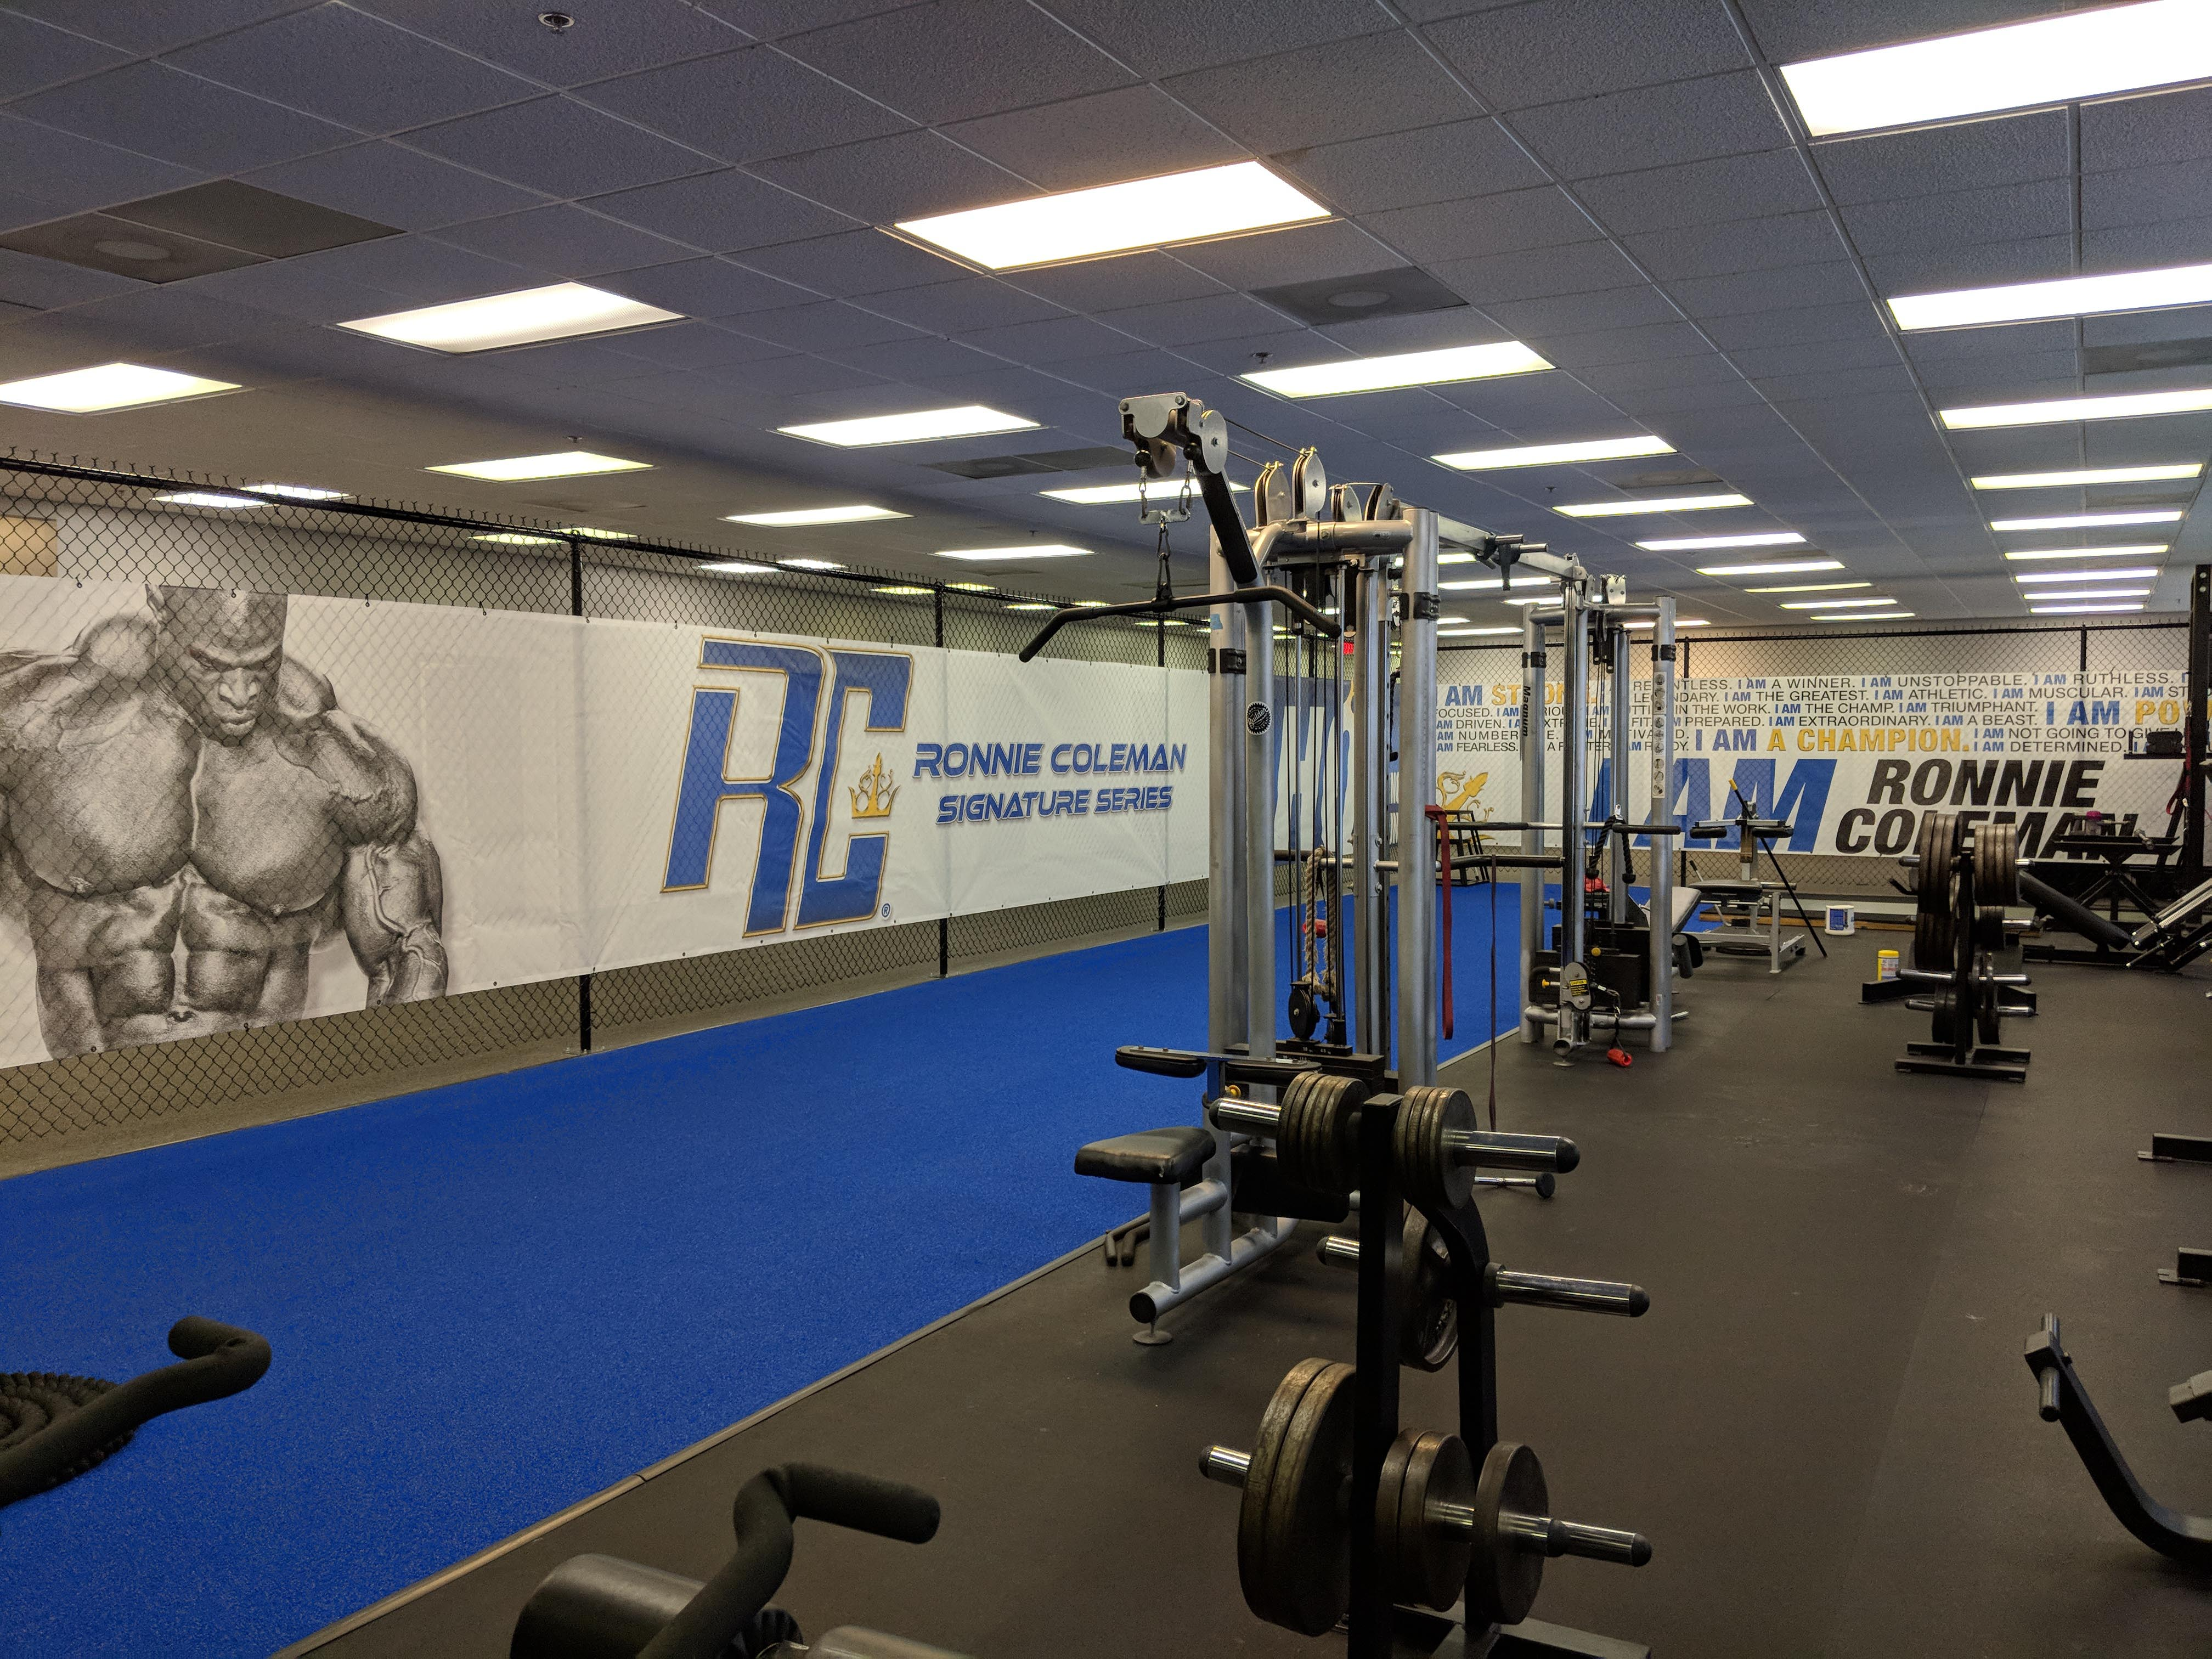 Ronnie Coleman Signature Series HQ Gym New